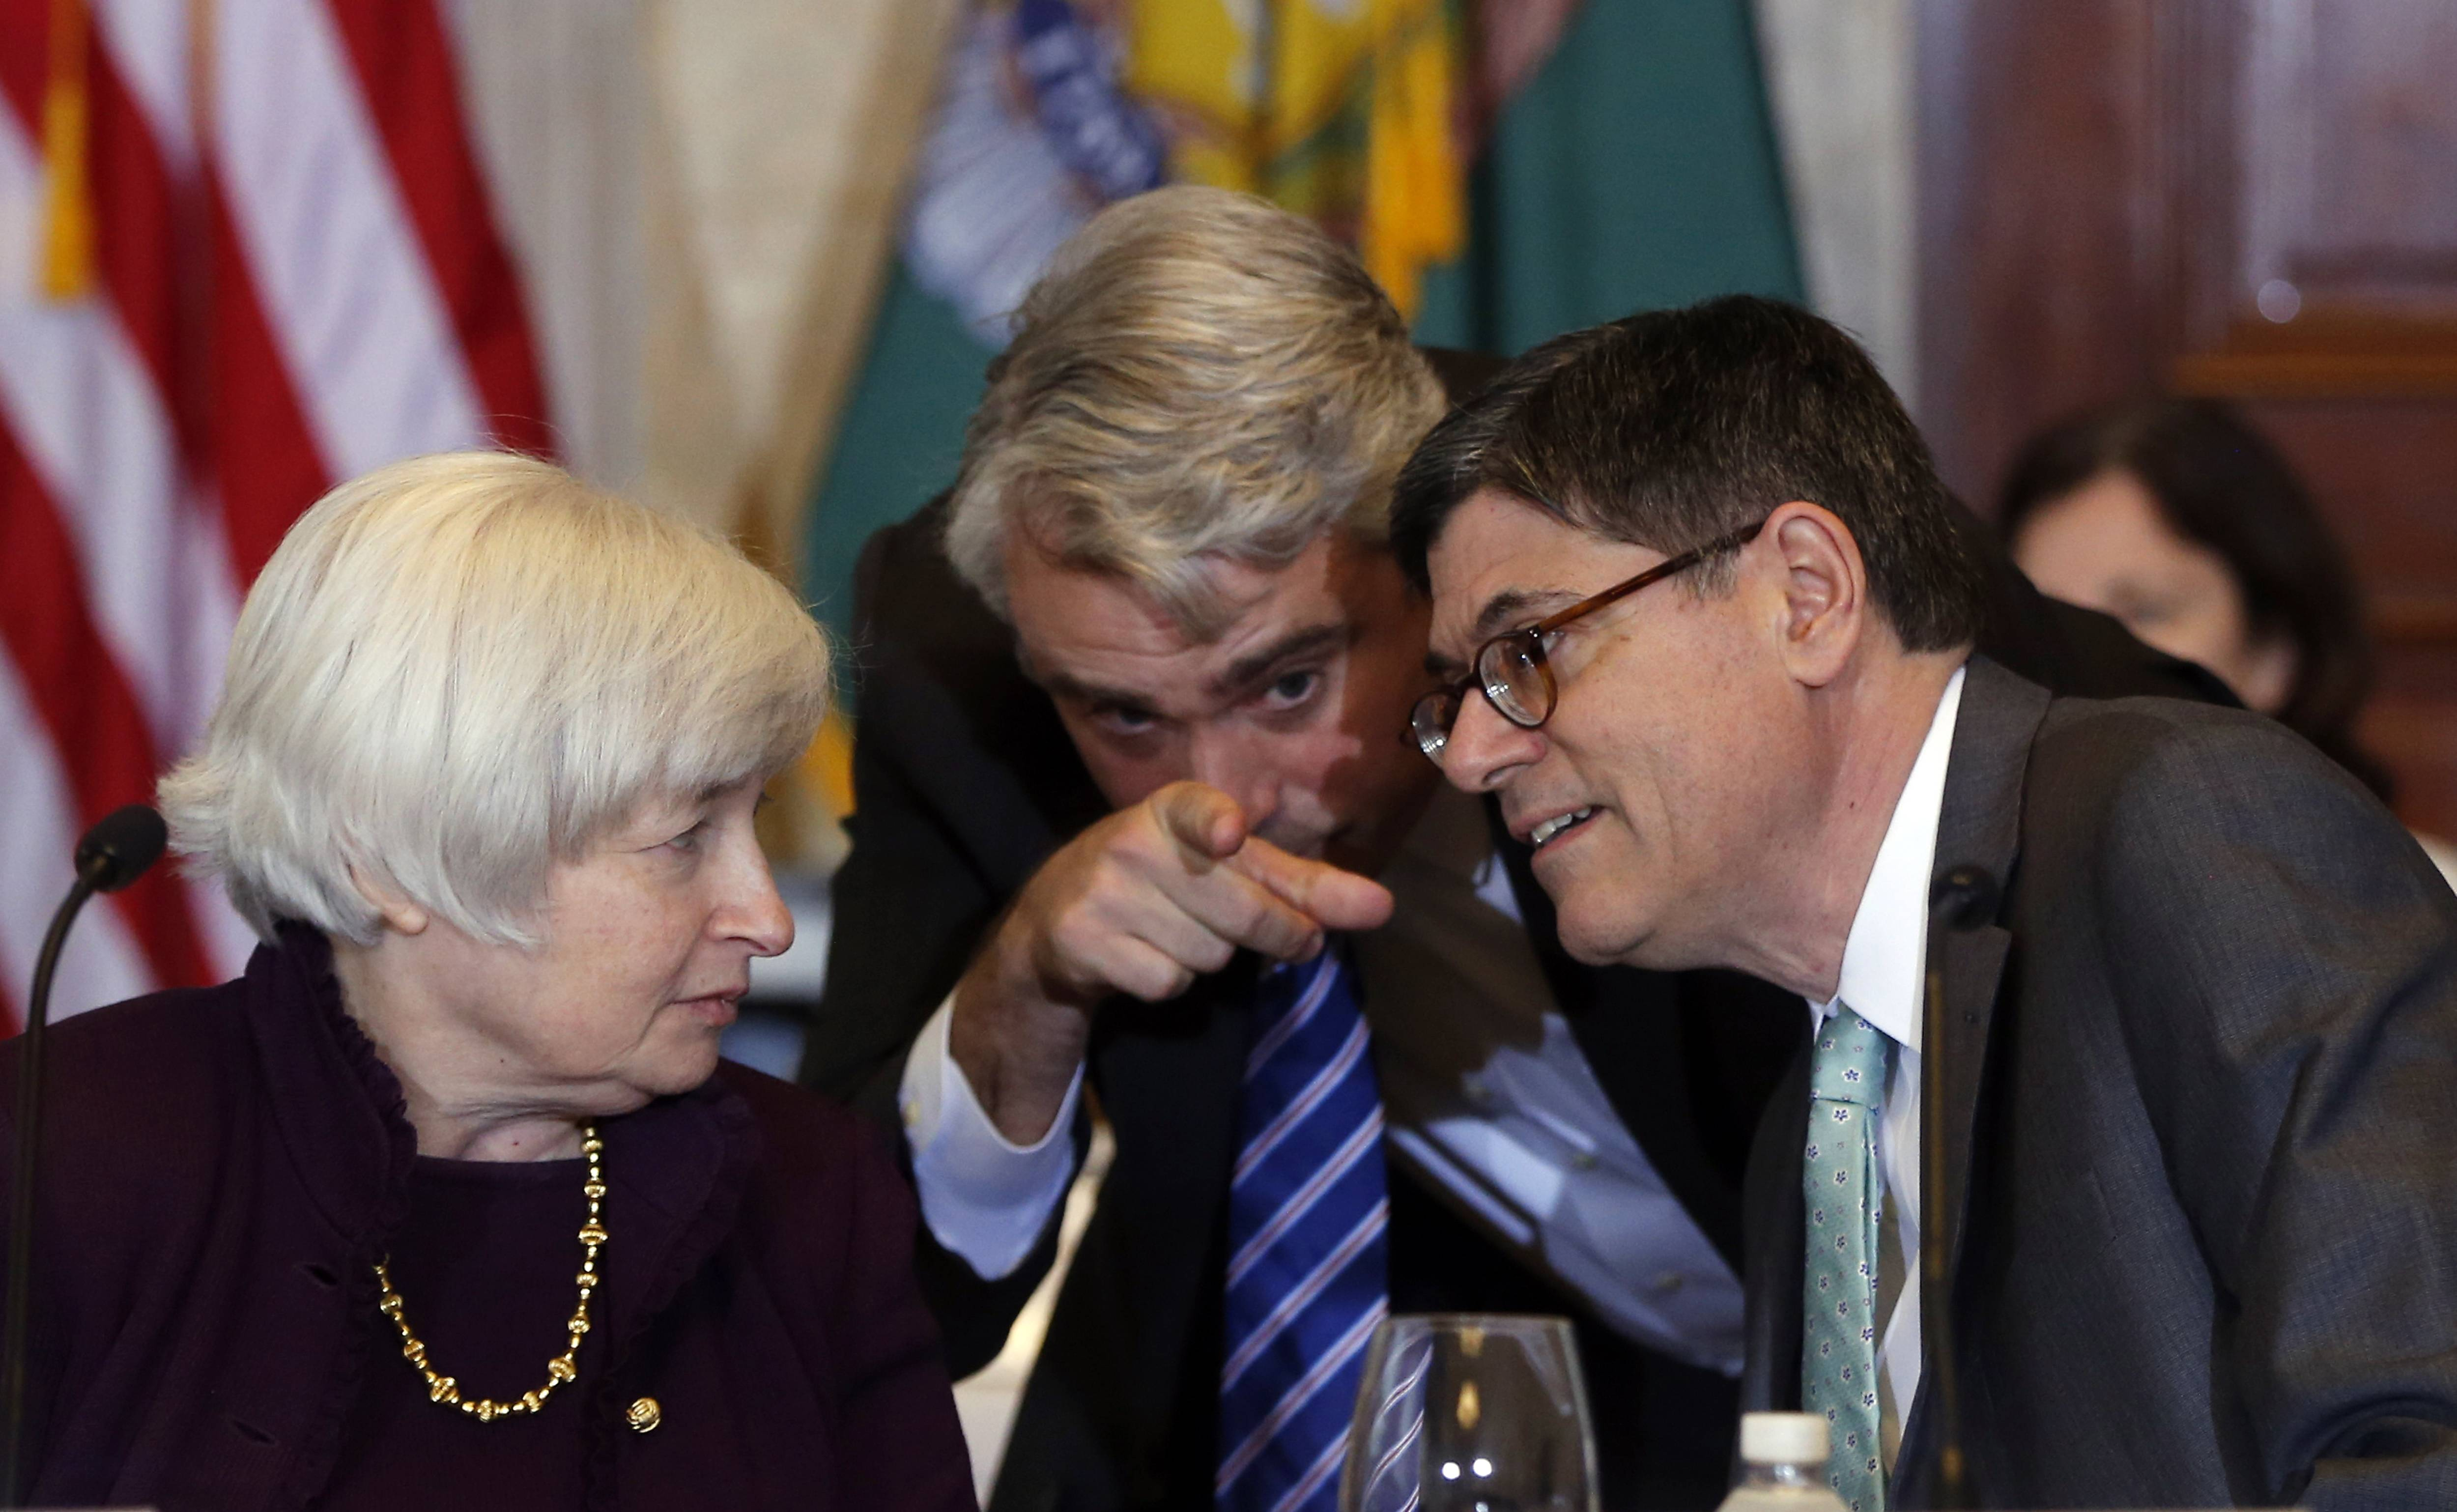 Treasury Secretary Jacob Lew, right, Patrick Pinschmidt, Executive Director of the Financial Stability Oversight Council, and Federal Reserve Chair Janet Yellen, left, huddle before the start of an open meeting of the Financial Stability Oversight Council, which monitors risk to the U.S. financial system, at the Treasury Department in Washington, Wednesday.